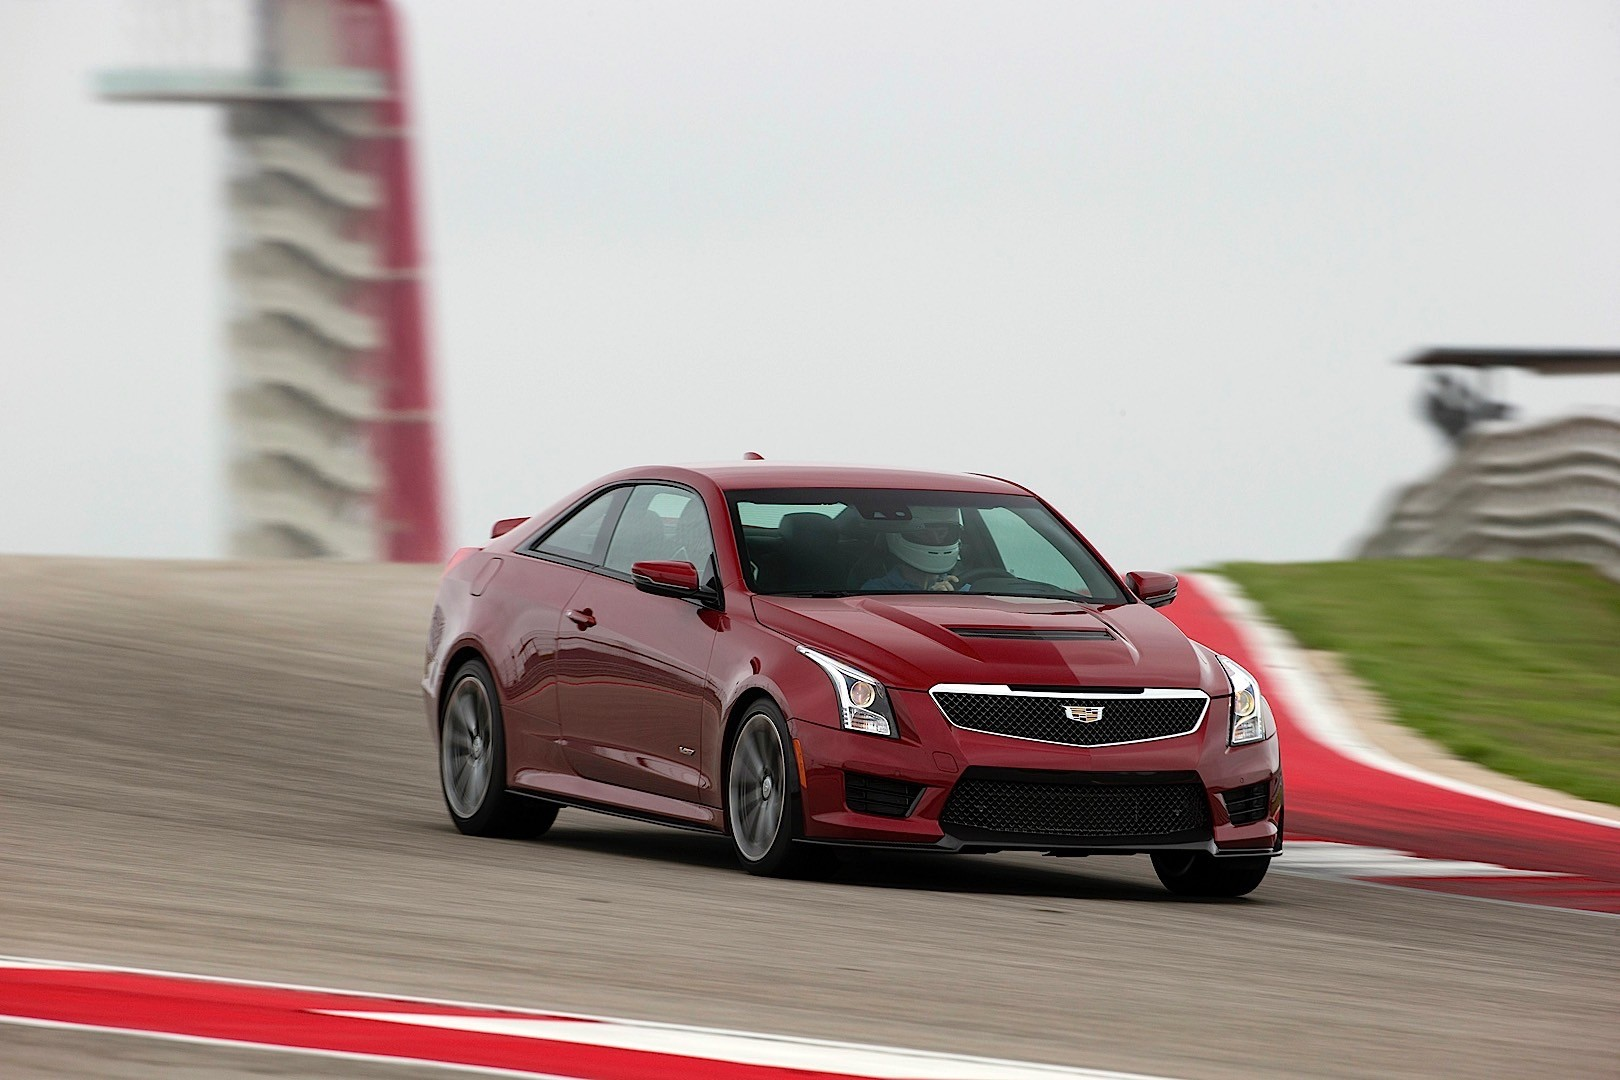 2019 Cadillac ATS V Coupe photo - 3